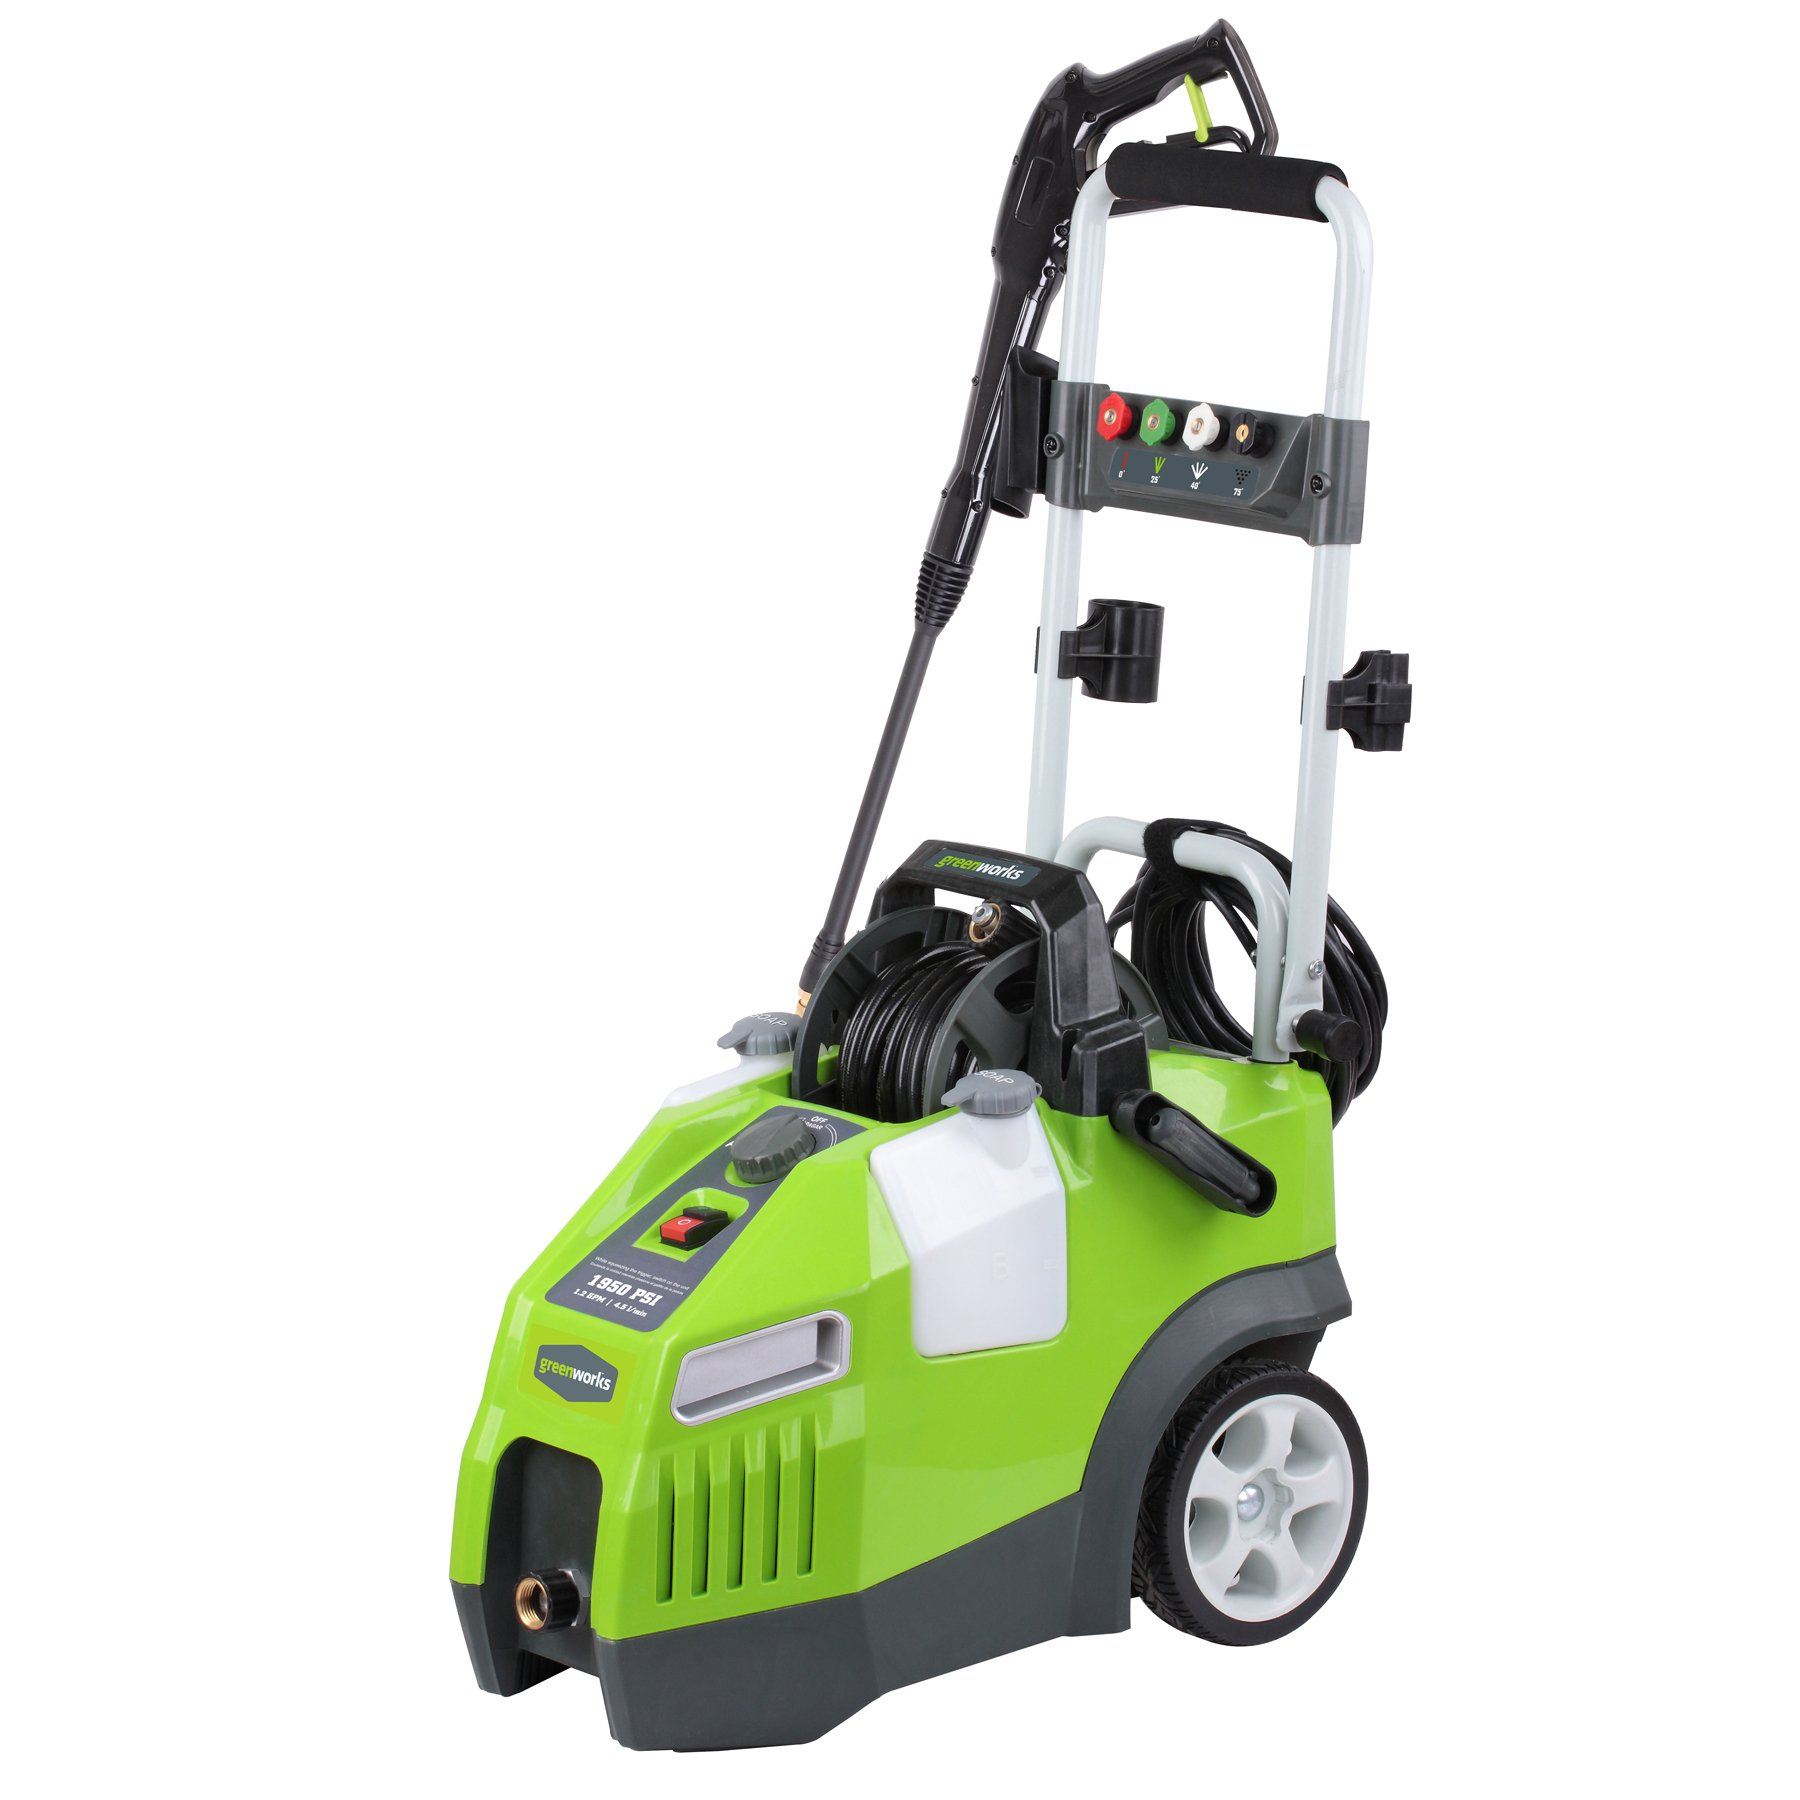 Greenworks 1950 PSI 13 Amp 1.2 GPM Pressure Washer with Hose Reel GPW1950